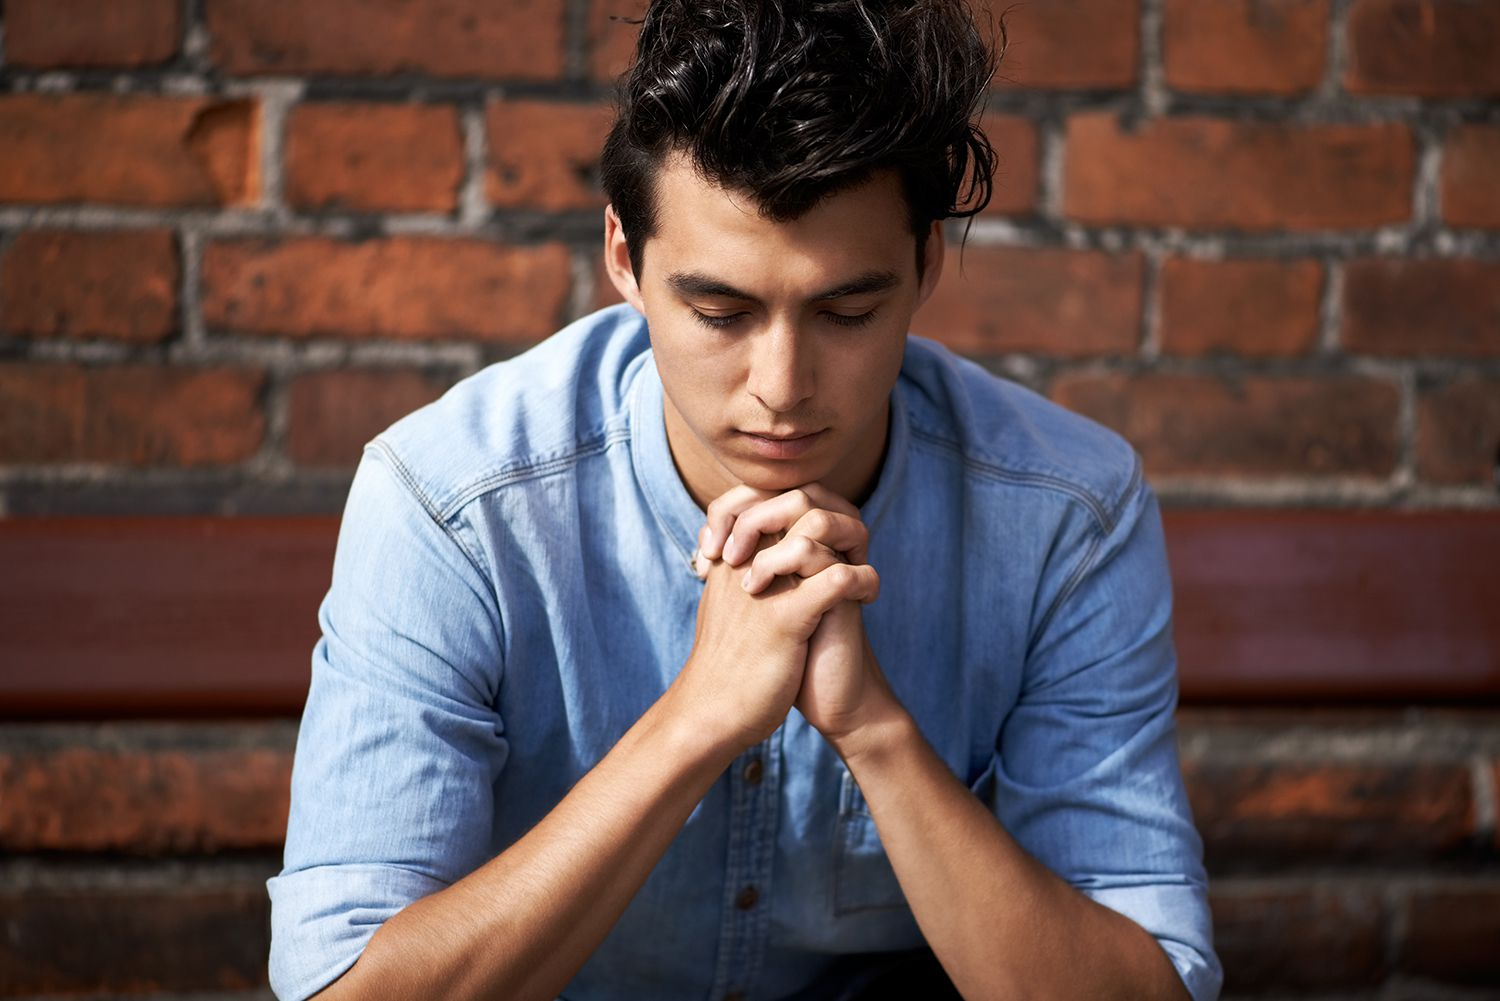 A young man praying for the answers.